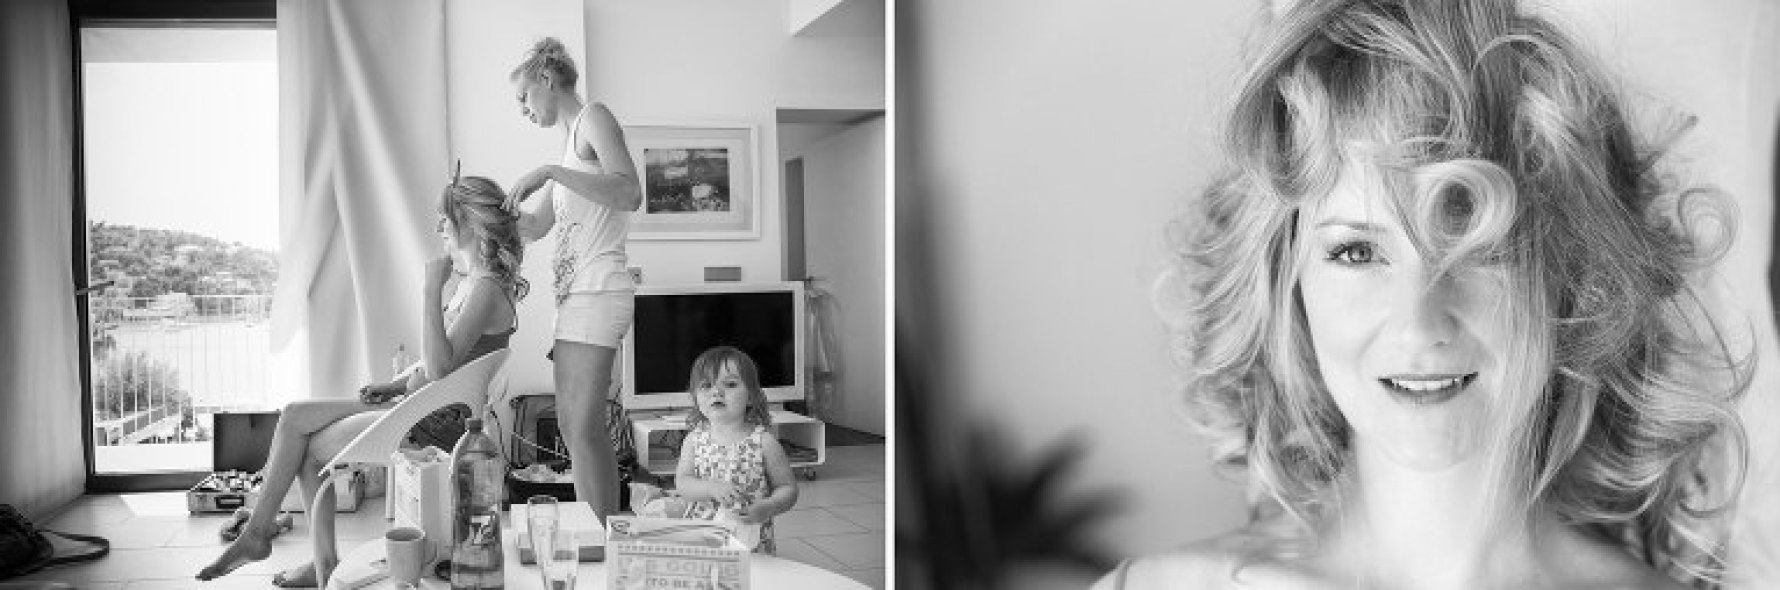 """The curls"" by Mallorca wedding photographer in Port de Soller"